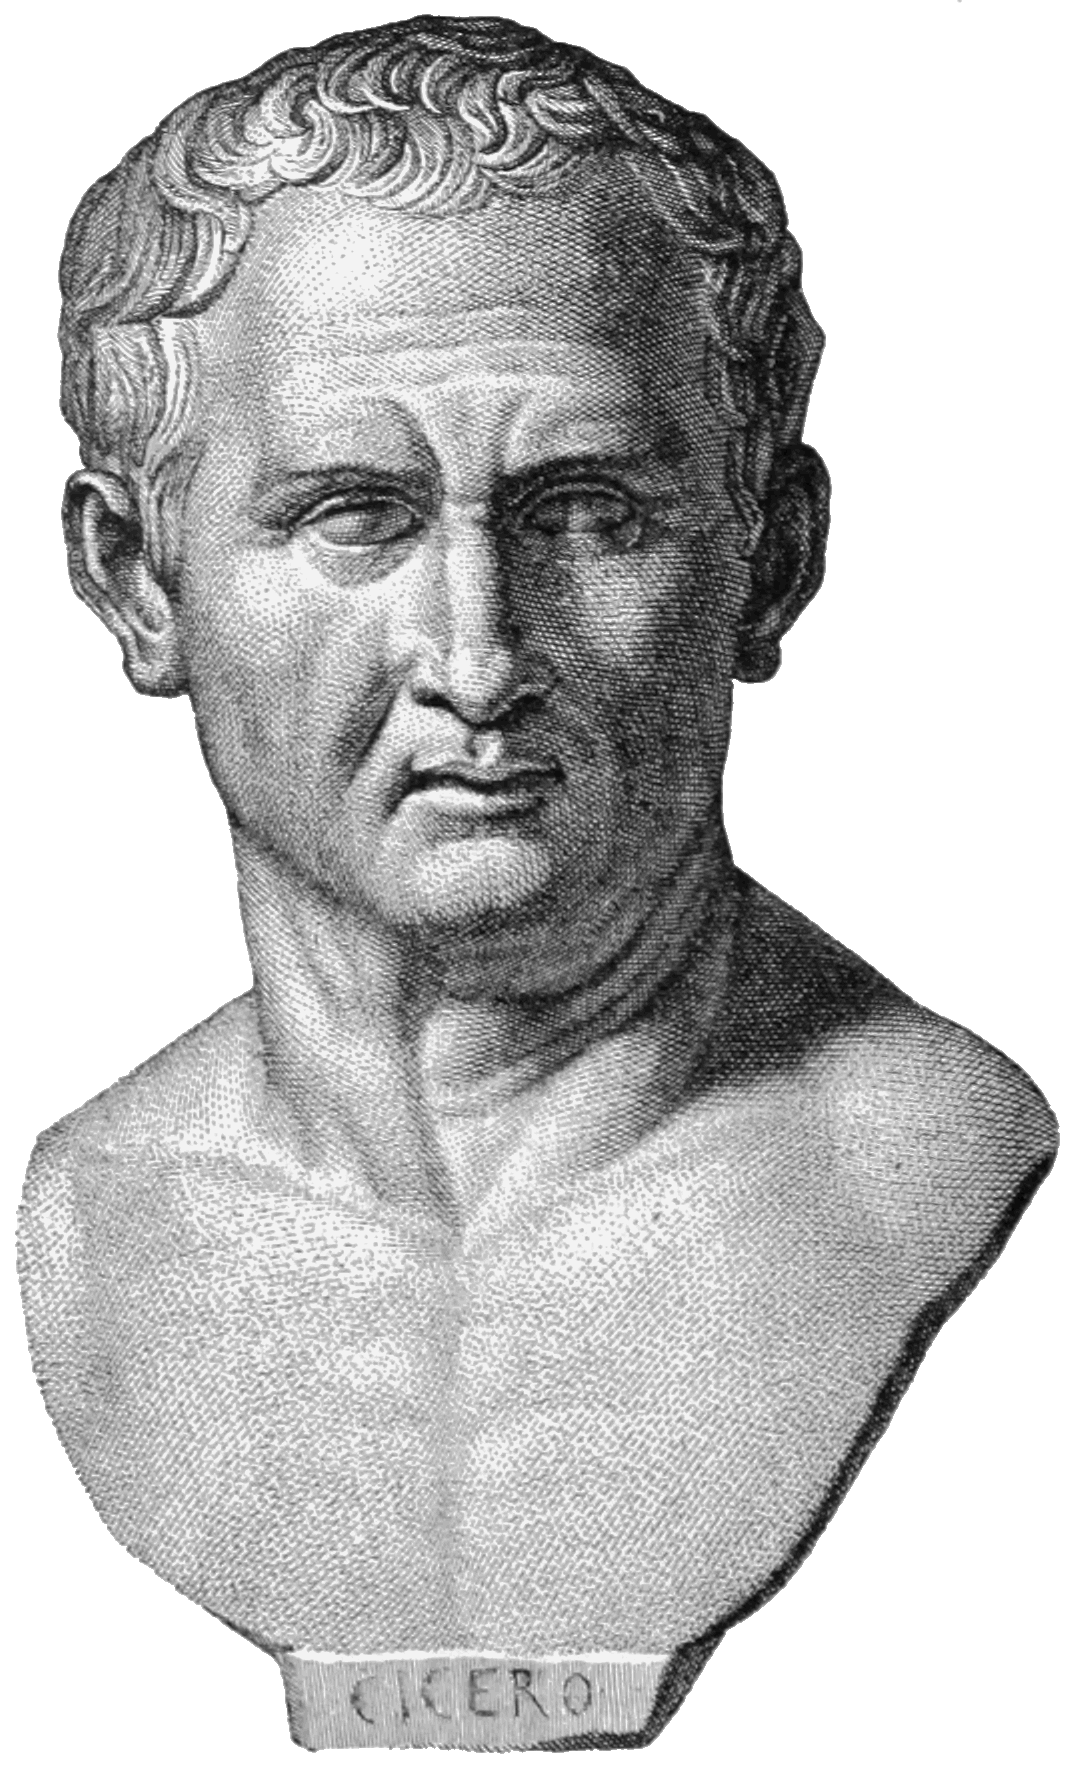 the life of marcus tullius cicero a roman philosopher and politician Marcus tullius cicero (usually known simply as cicero) (106 - 43 bc) was a roman philosopher, orator and statesman of the roman period he was a central political figure during the turbulent reign of julius caesar, and politics was always the most important thing in his life, but he still.